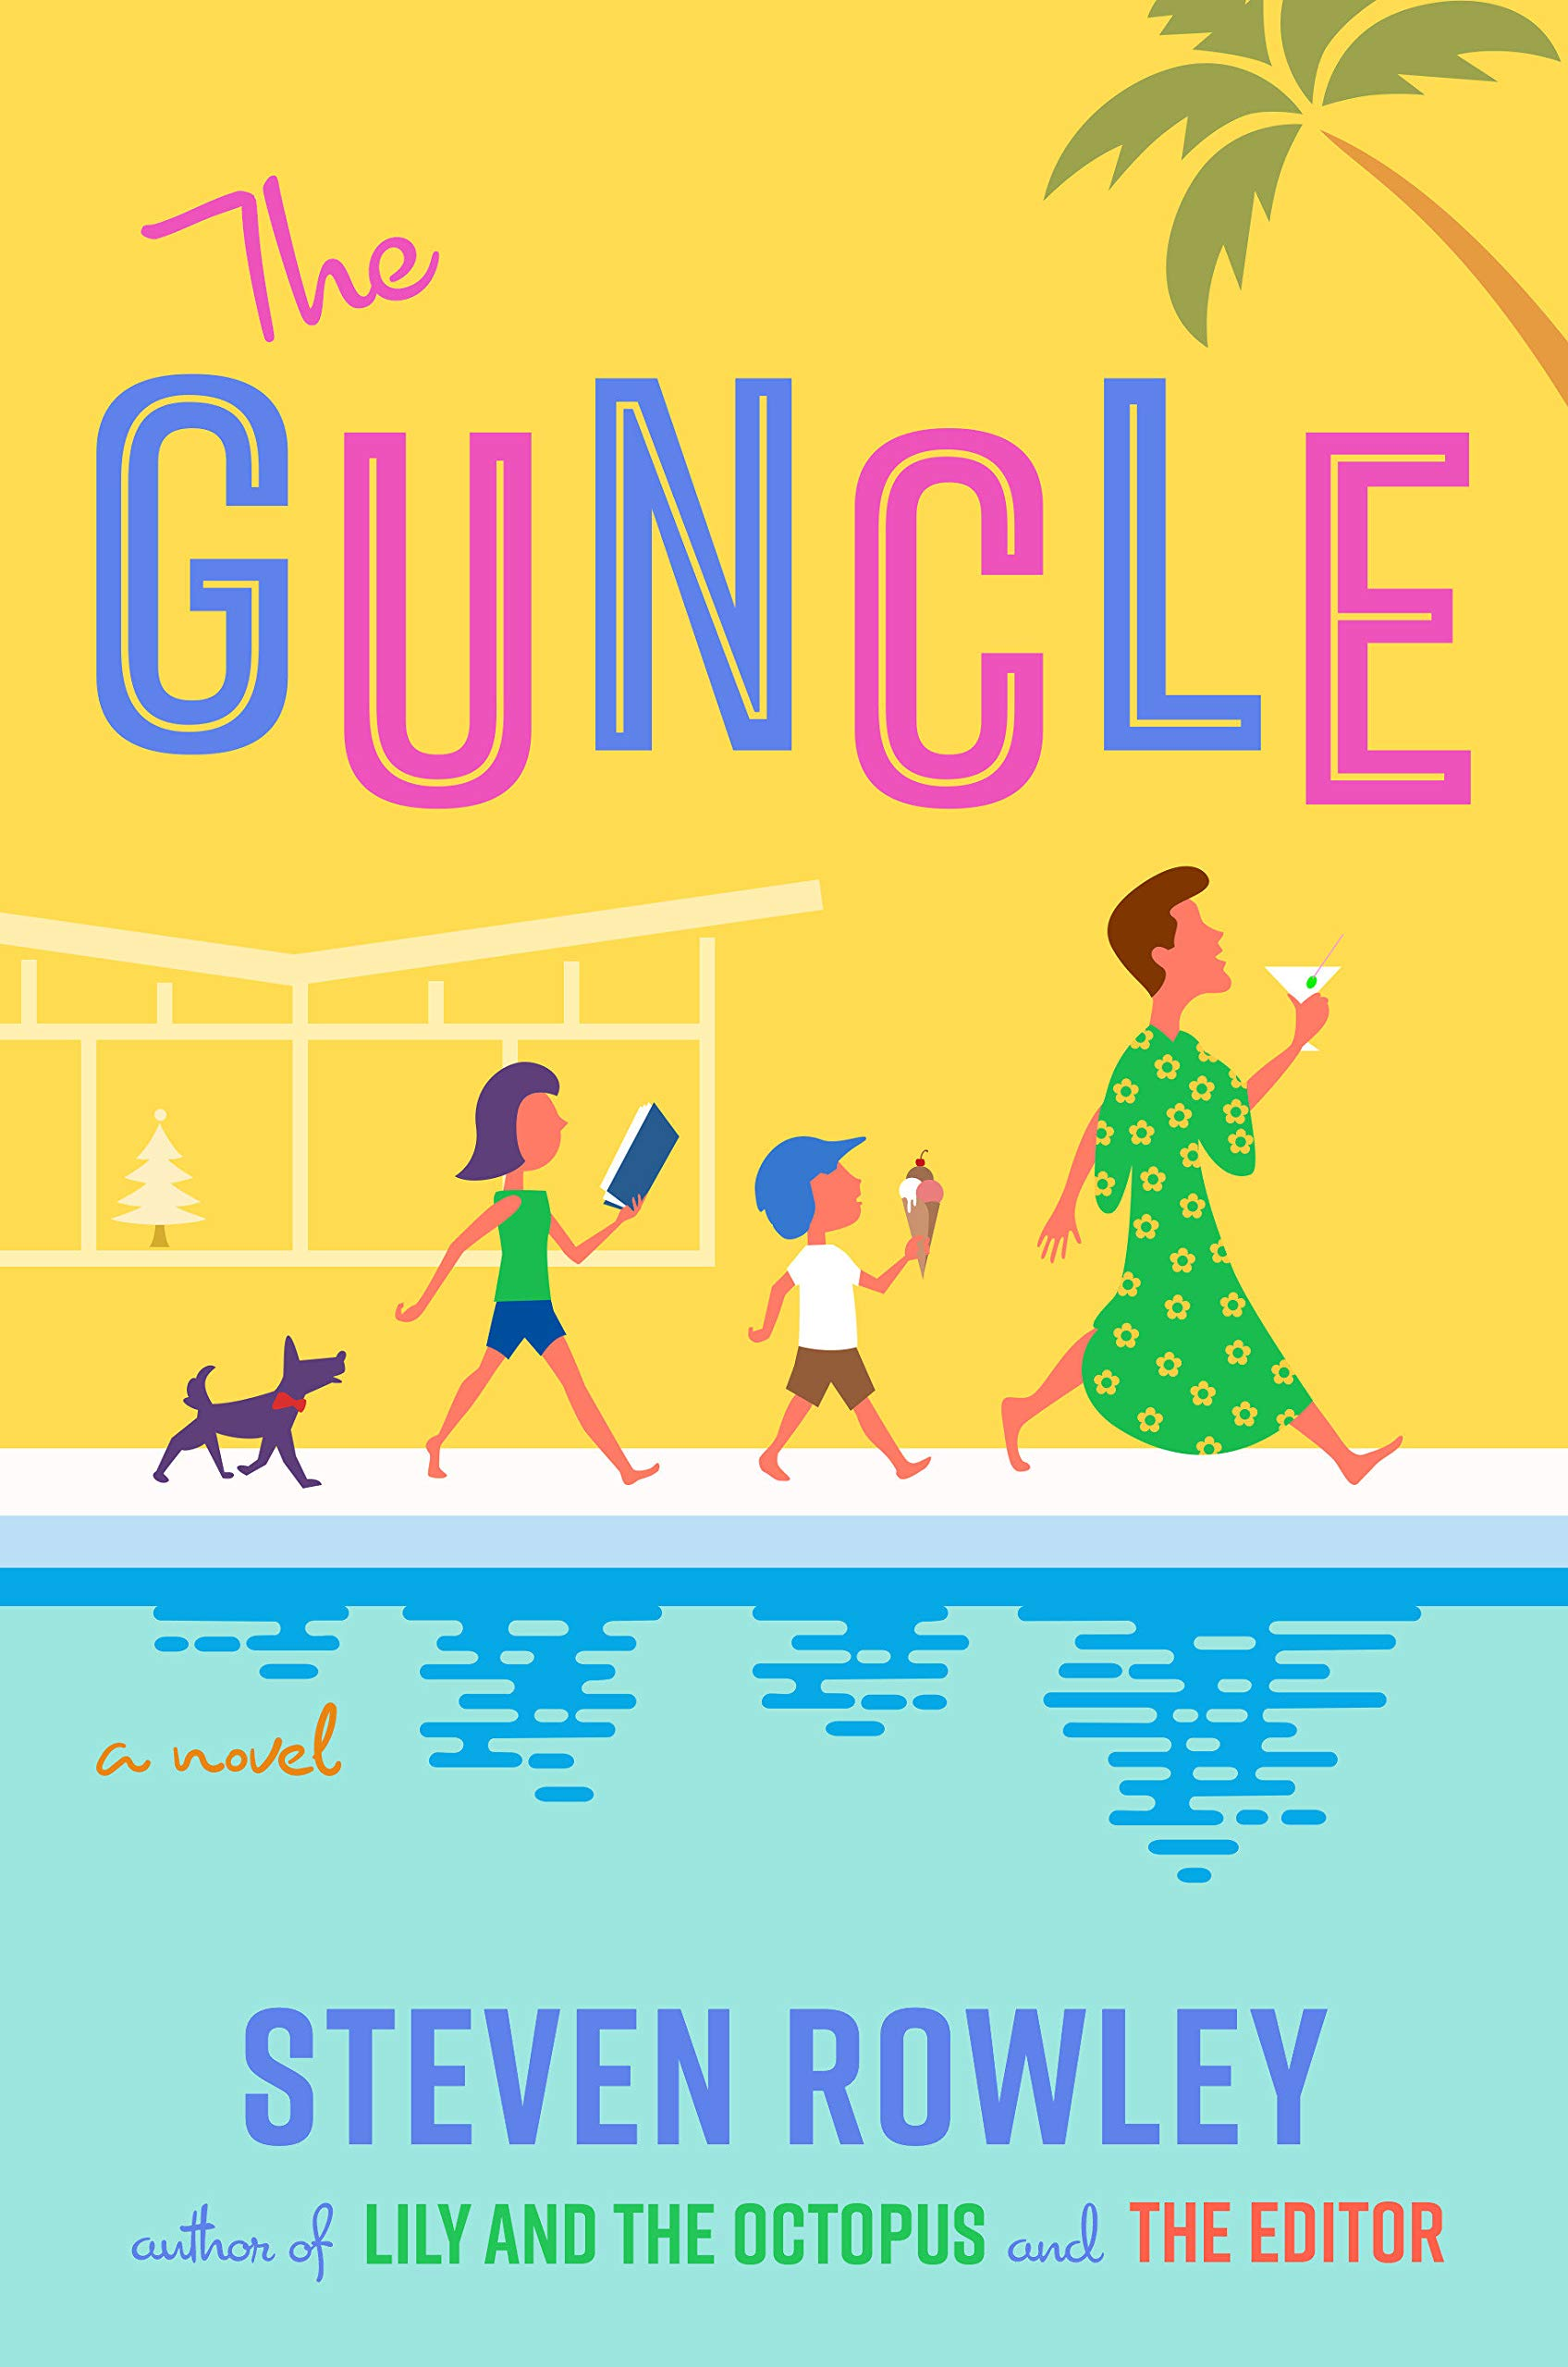 Andrea's Pick of the Week: The Guncle by Steven Rowley